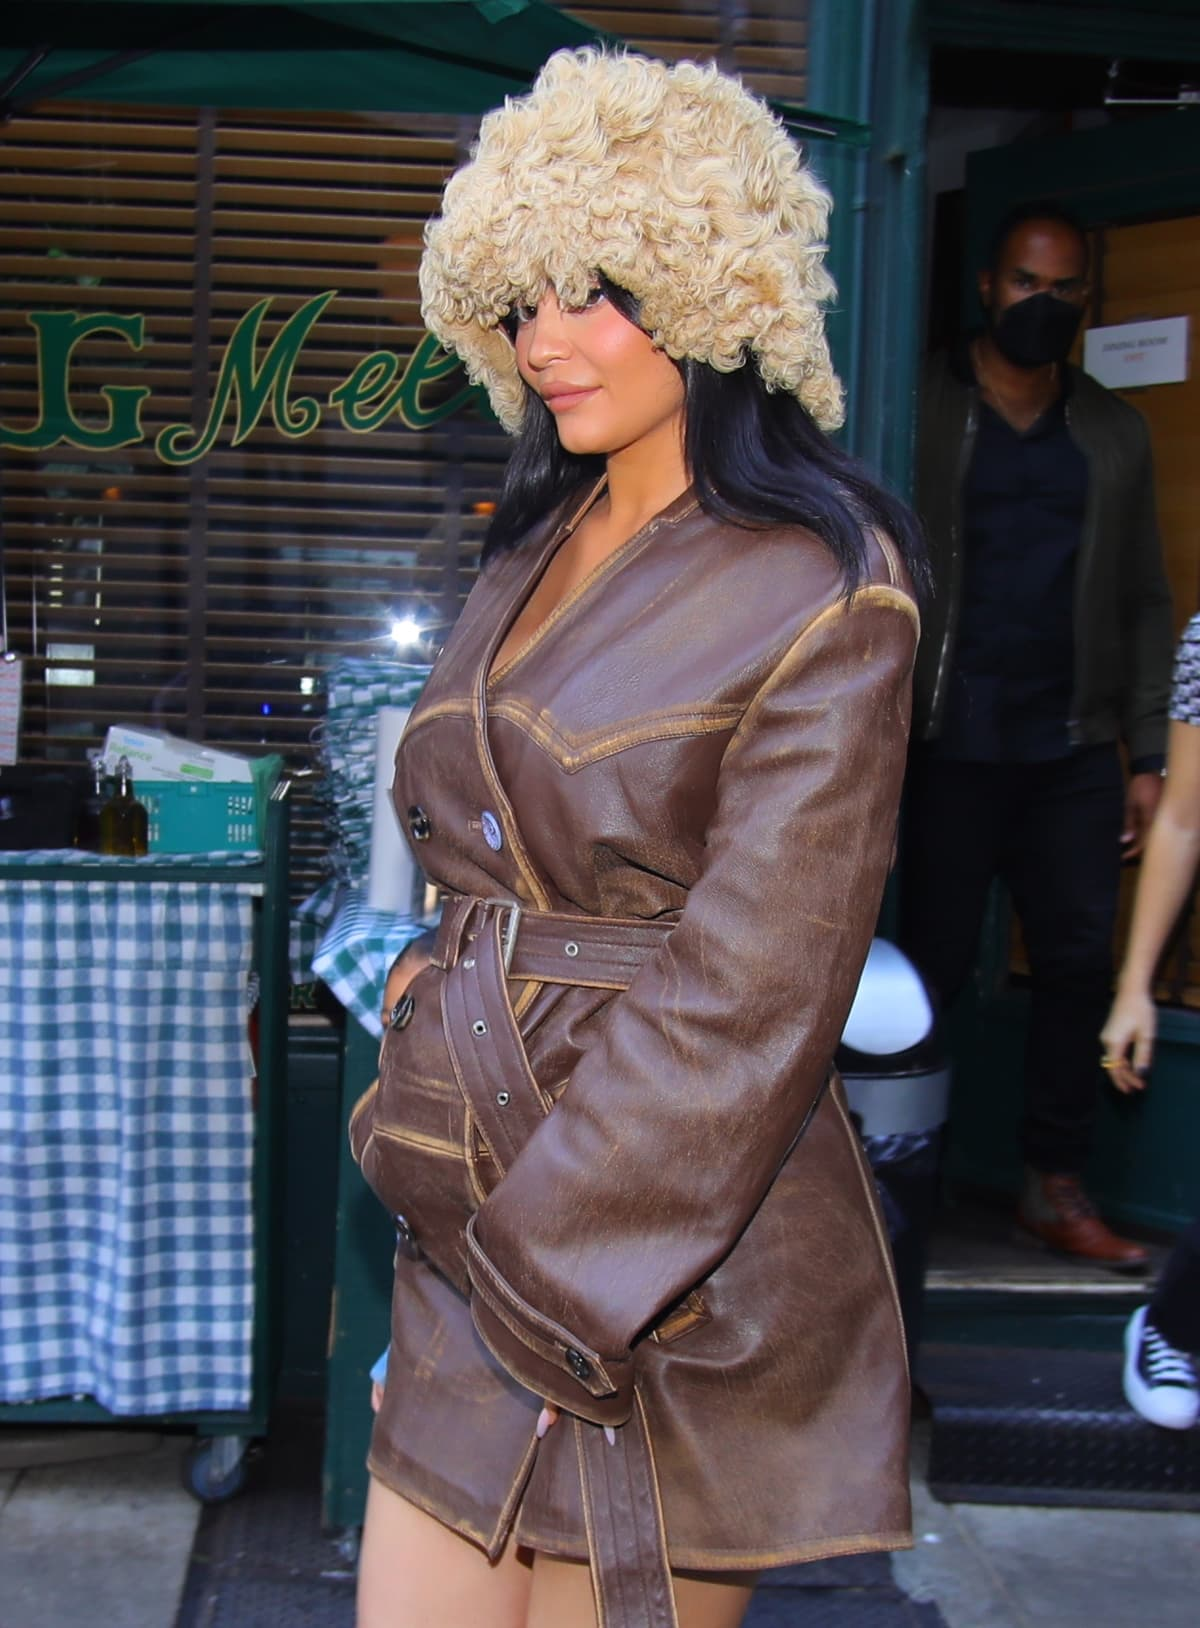 Kylie Jenner in a fur hat and a leather coat as she holds daughter Stormi's hand after lunch at the iconic Upper East Side restaurant J.G. Melon